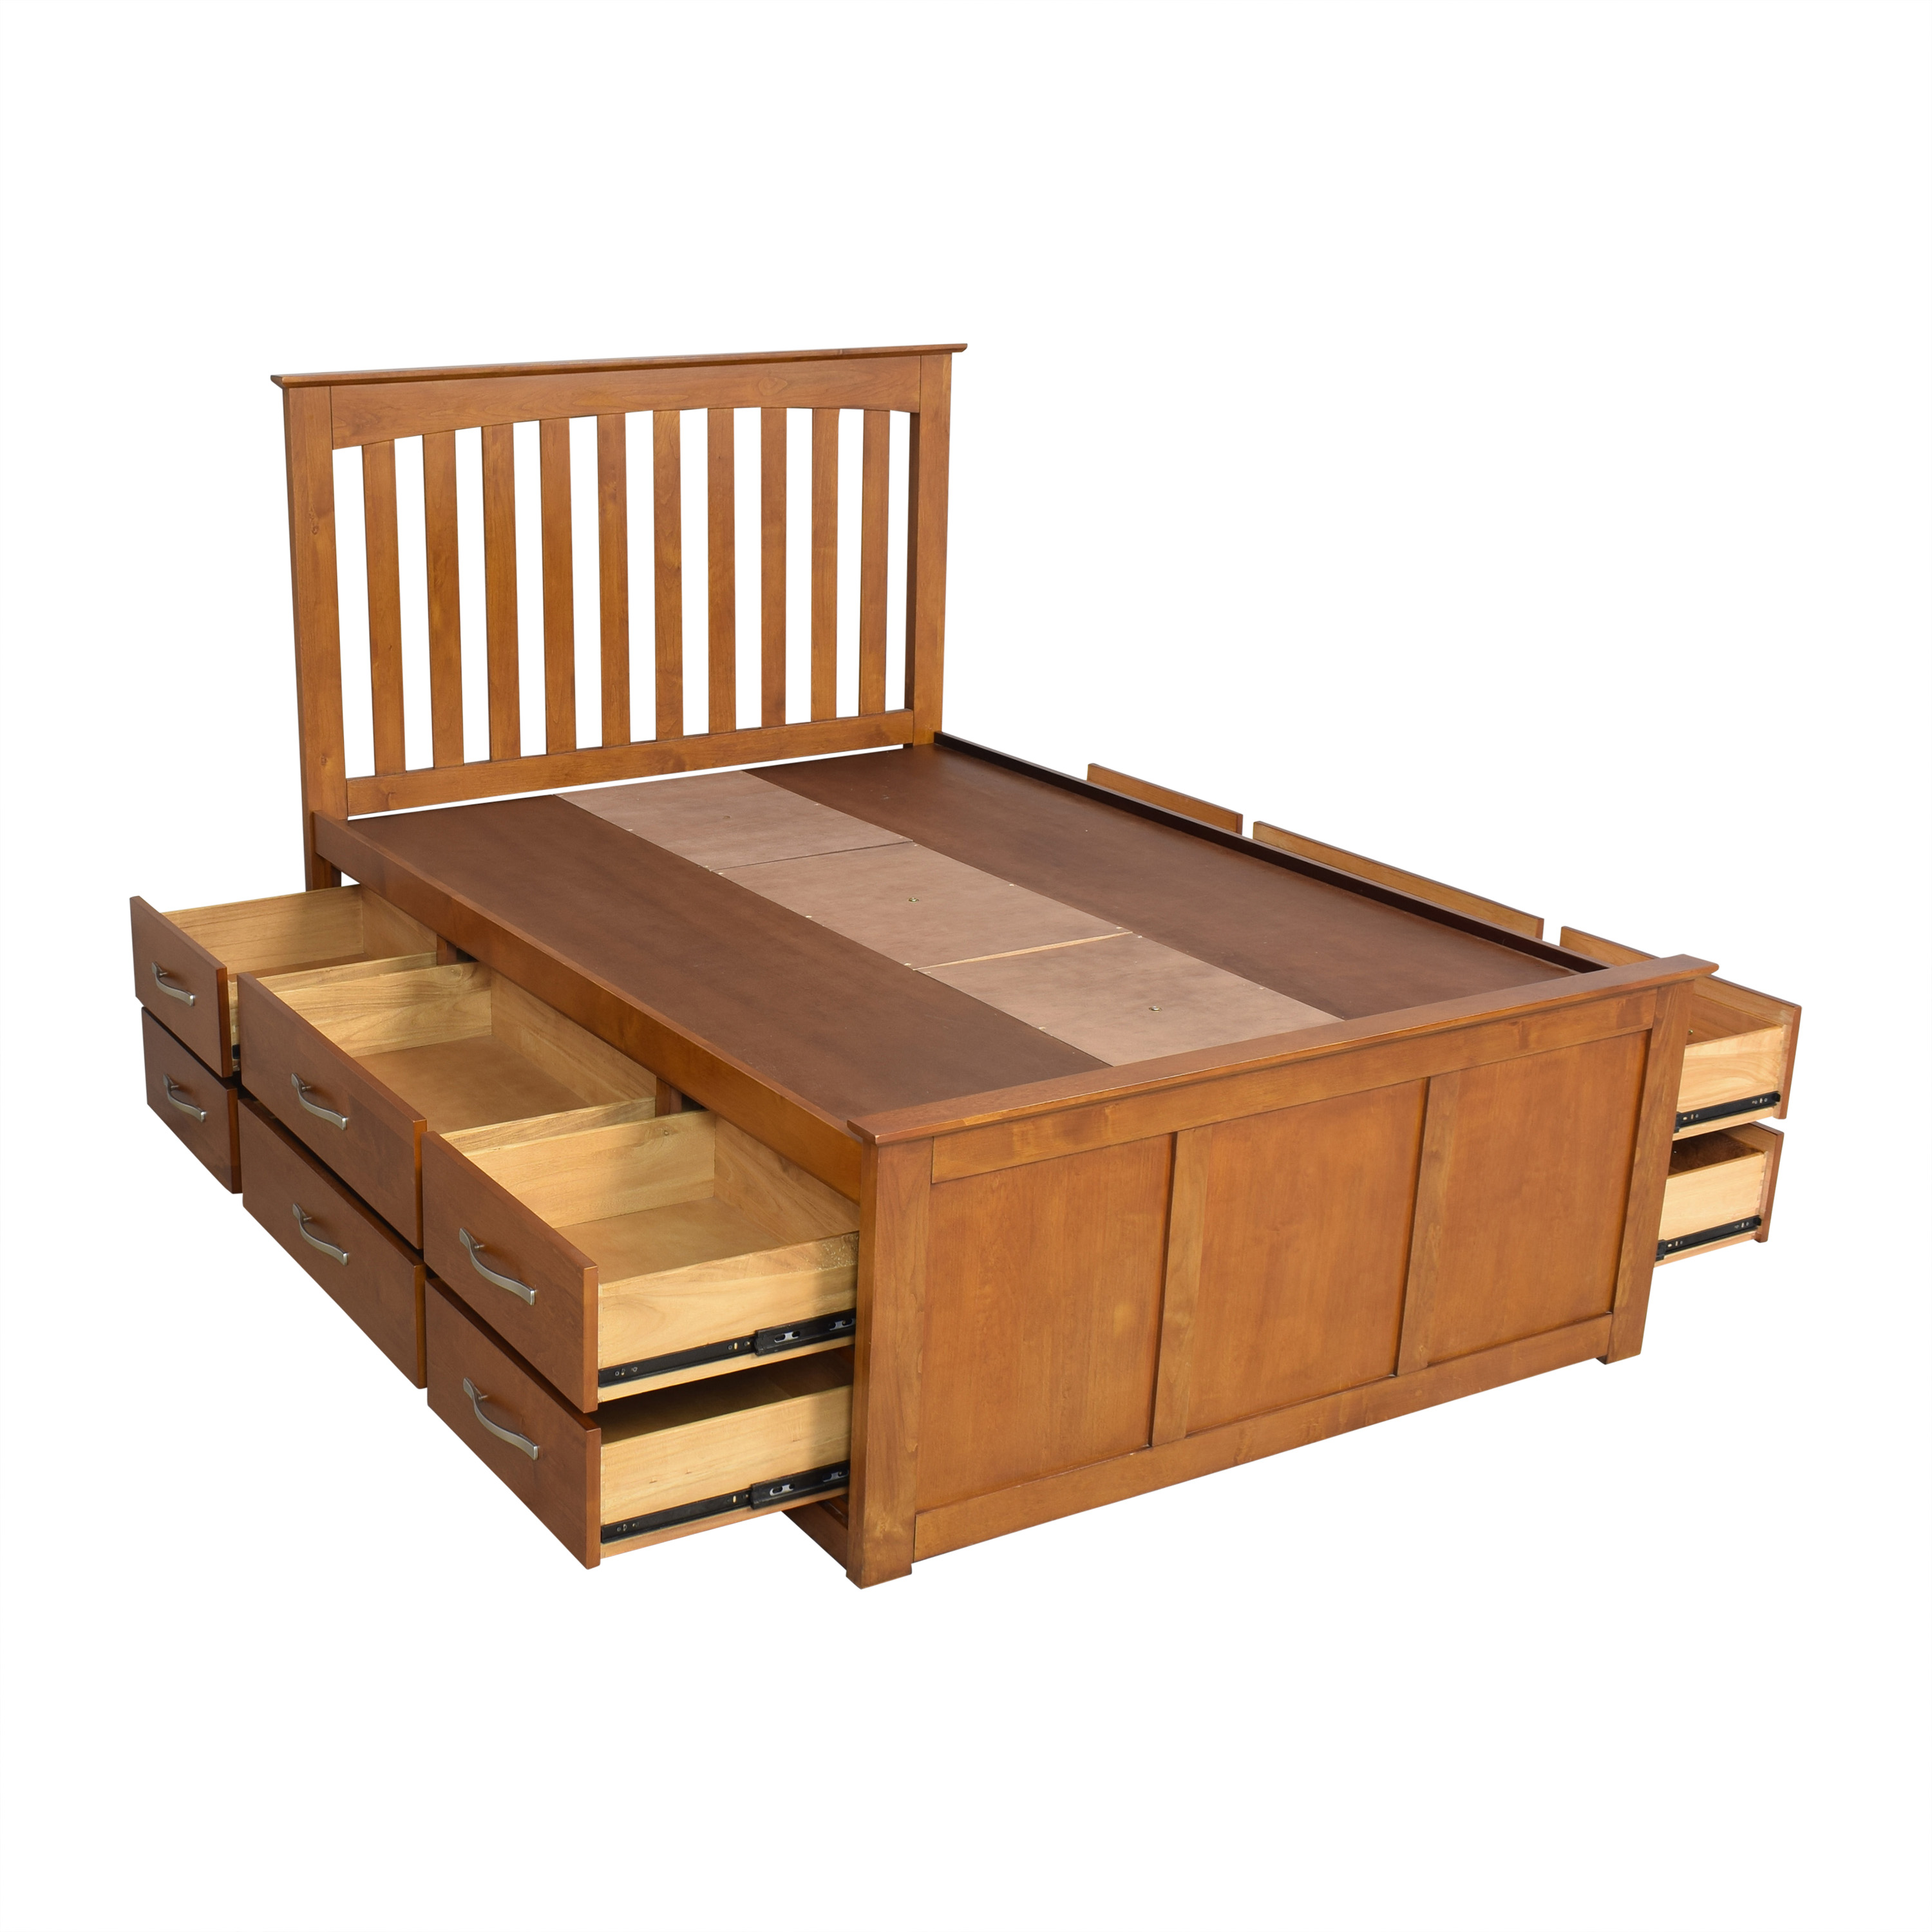 buy Raymour & Flanigan Captain's Full Bed Raymour & Flanigan